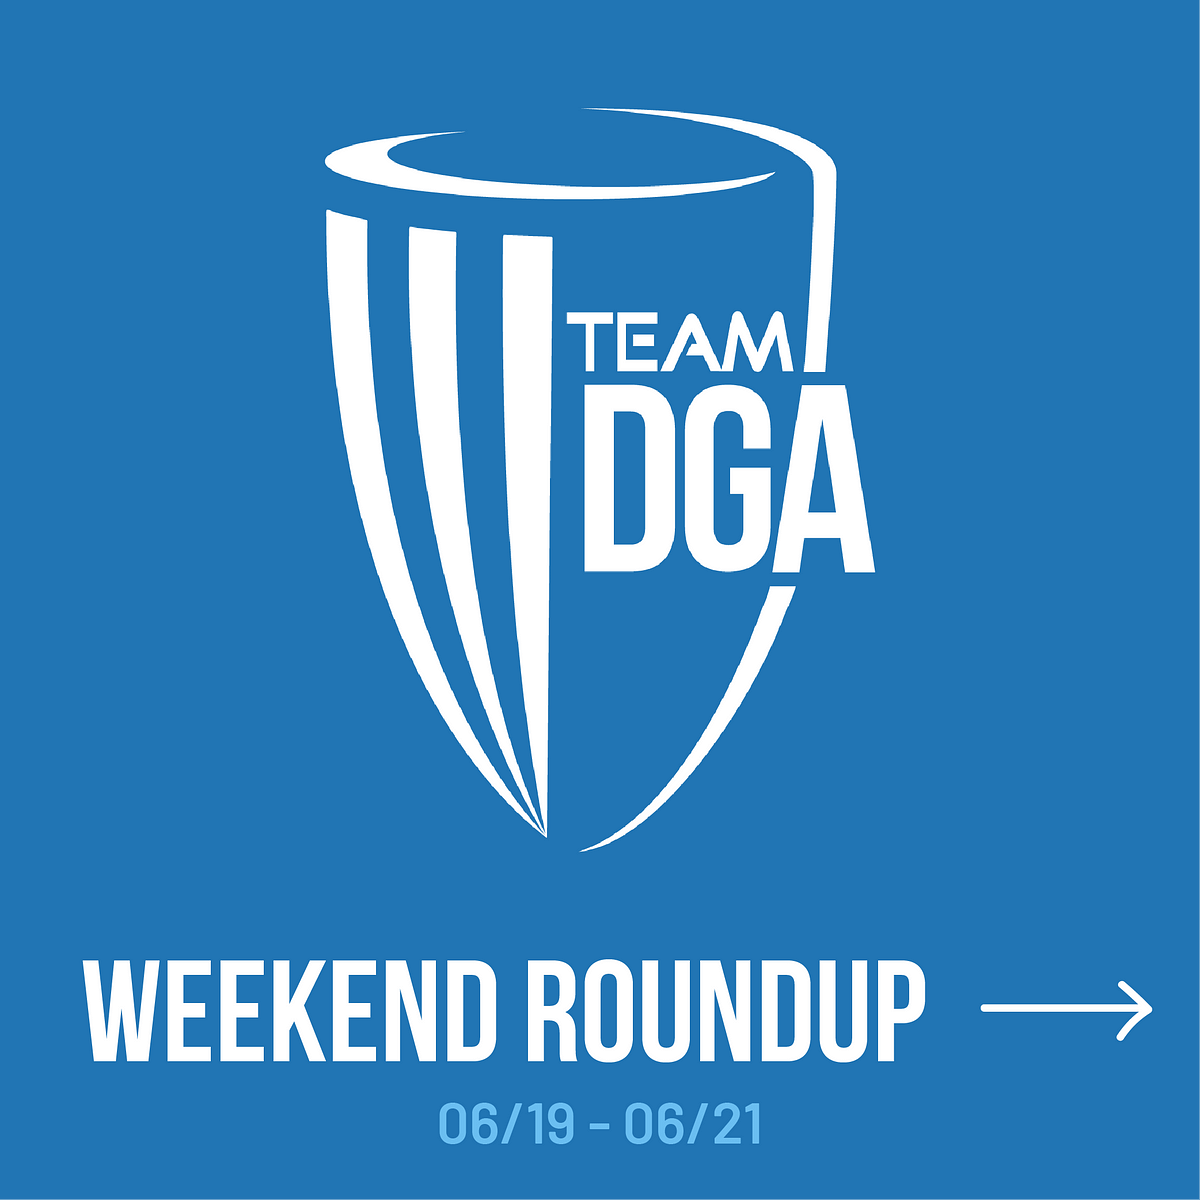 Team dga weekend roundup 6/19 - 6/21